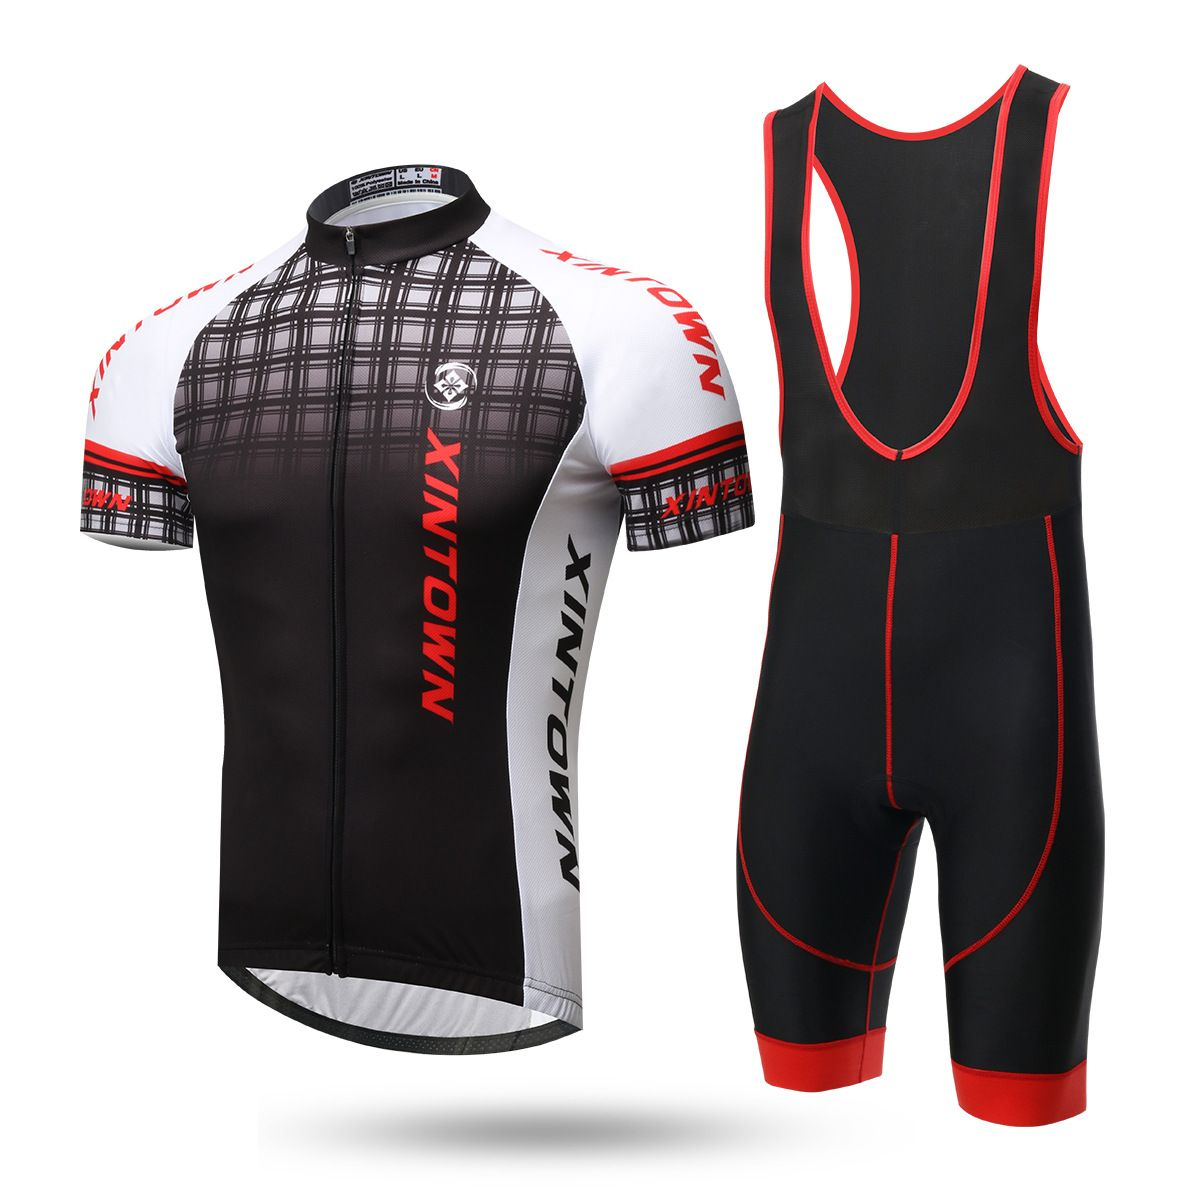 SKYSPER Mens Cycling Jerseys Long Sleeve Cycling Suits with 3D Gel Padded Bib Shorts Pants Trousers Autumn Winter Clothing Outdoor Sportswear Set for Race Bike Bicycle Team